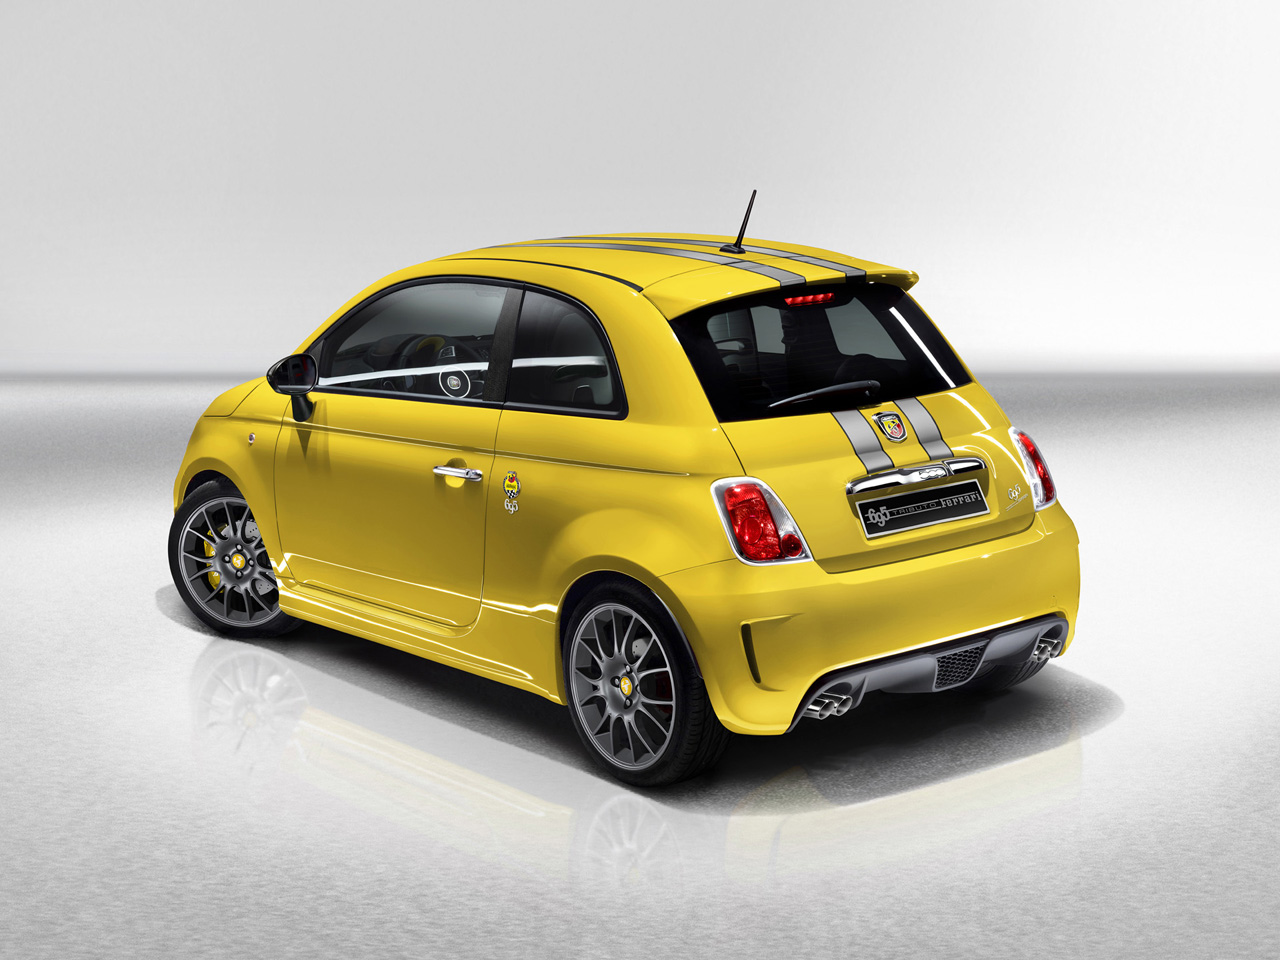 2011 Abarth 695 Tributo Ferrari Yellow Rear And Side Abarth 695 Tributo Ferrari